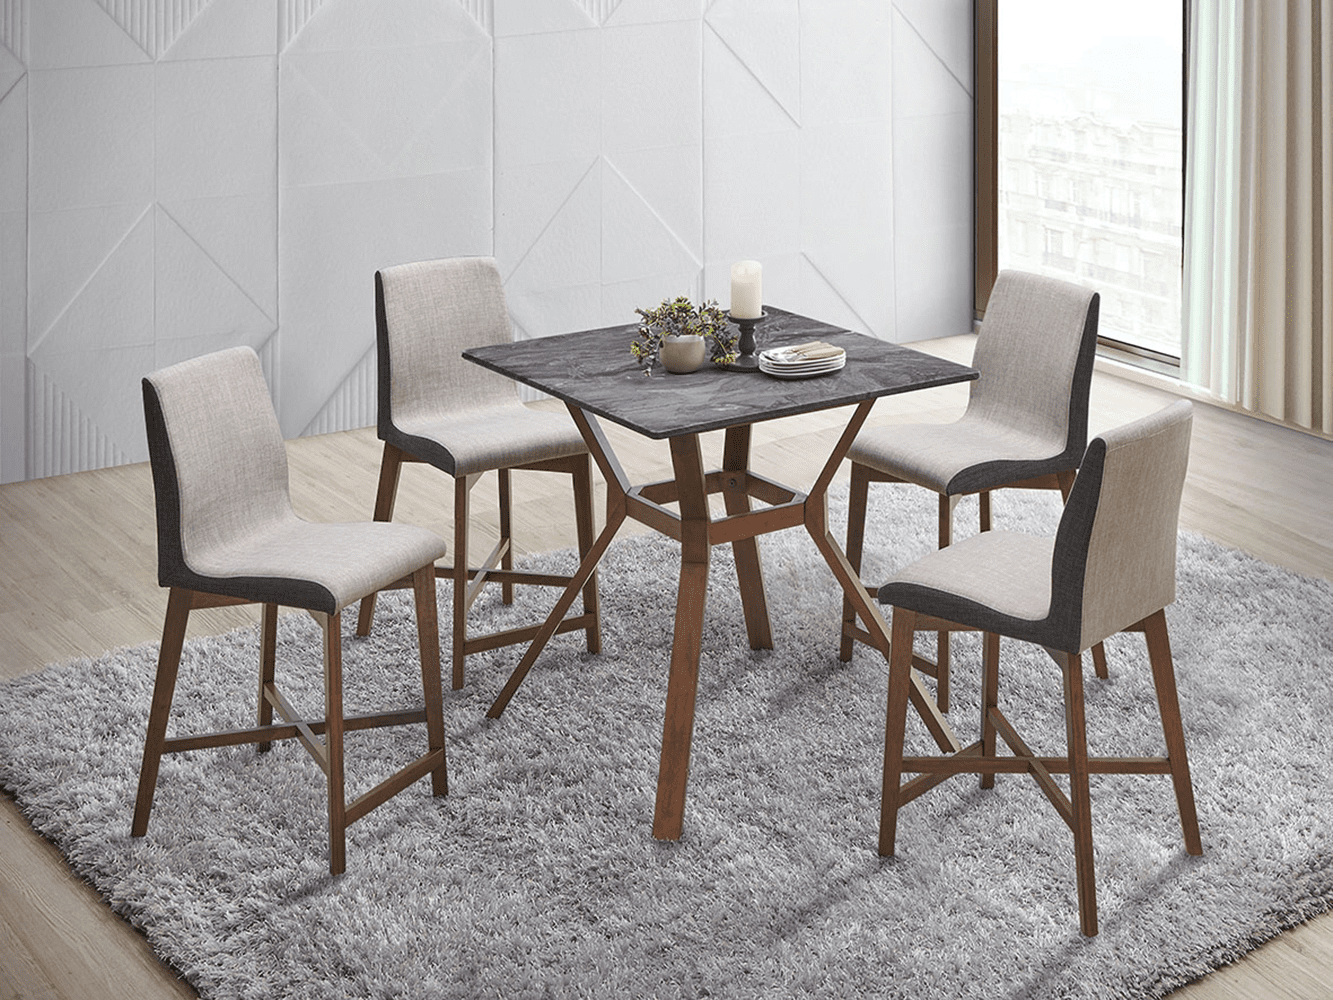 modern dining table: Parkersburg Square Counter Height Table Paladina And Natural Walnut